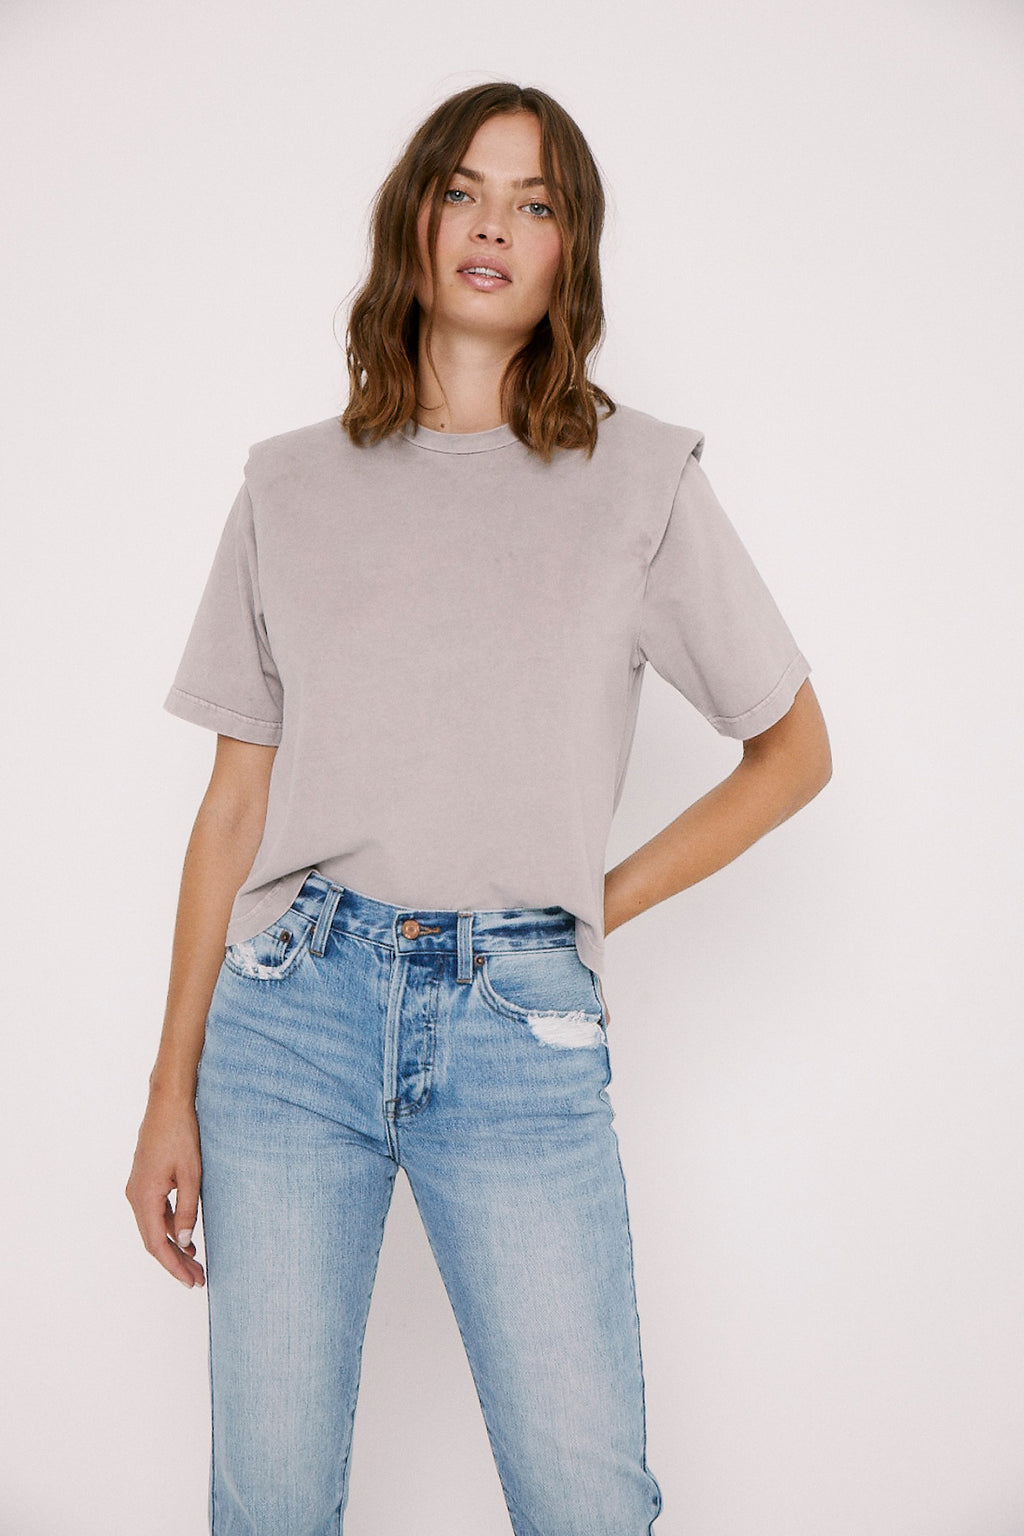 Brileigh Shoulder Pad Pleat Tee - Barnk